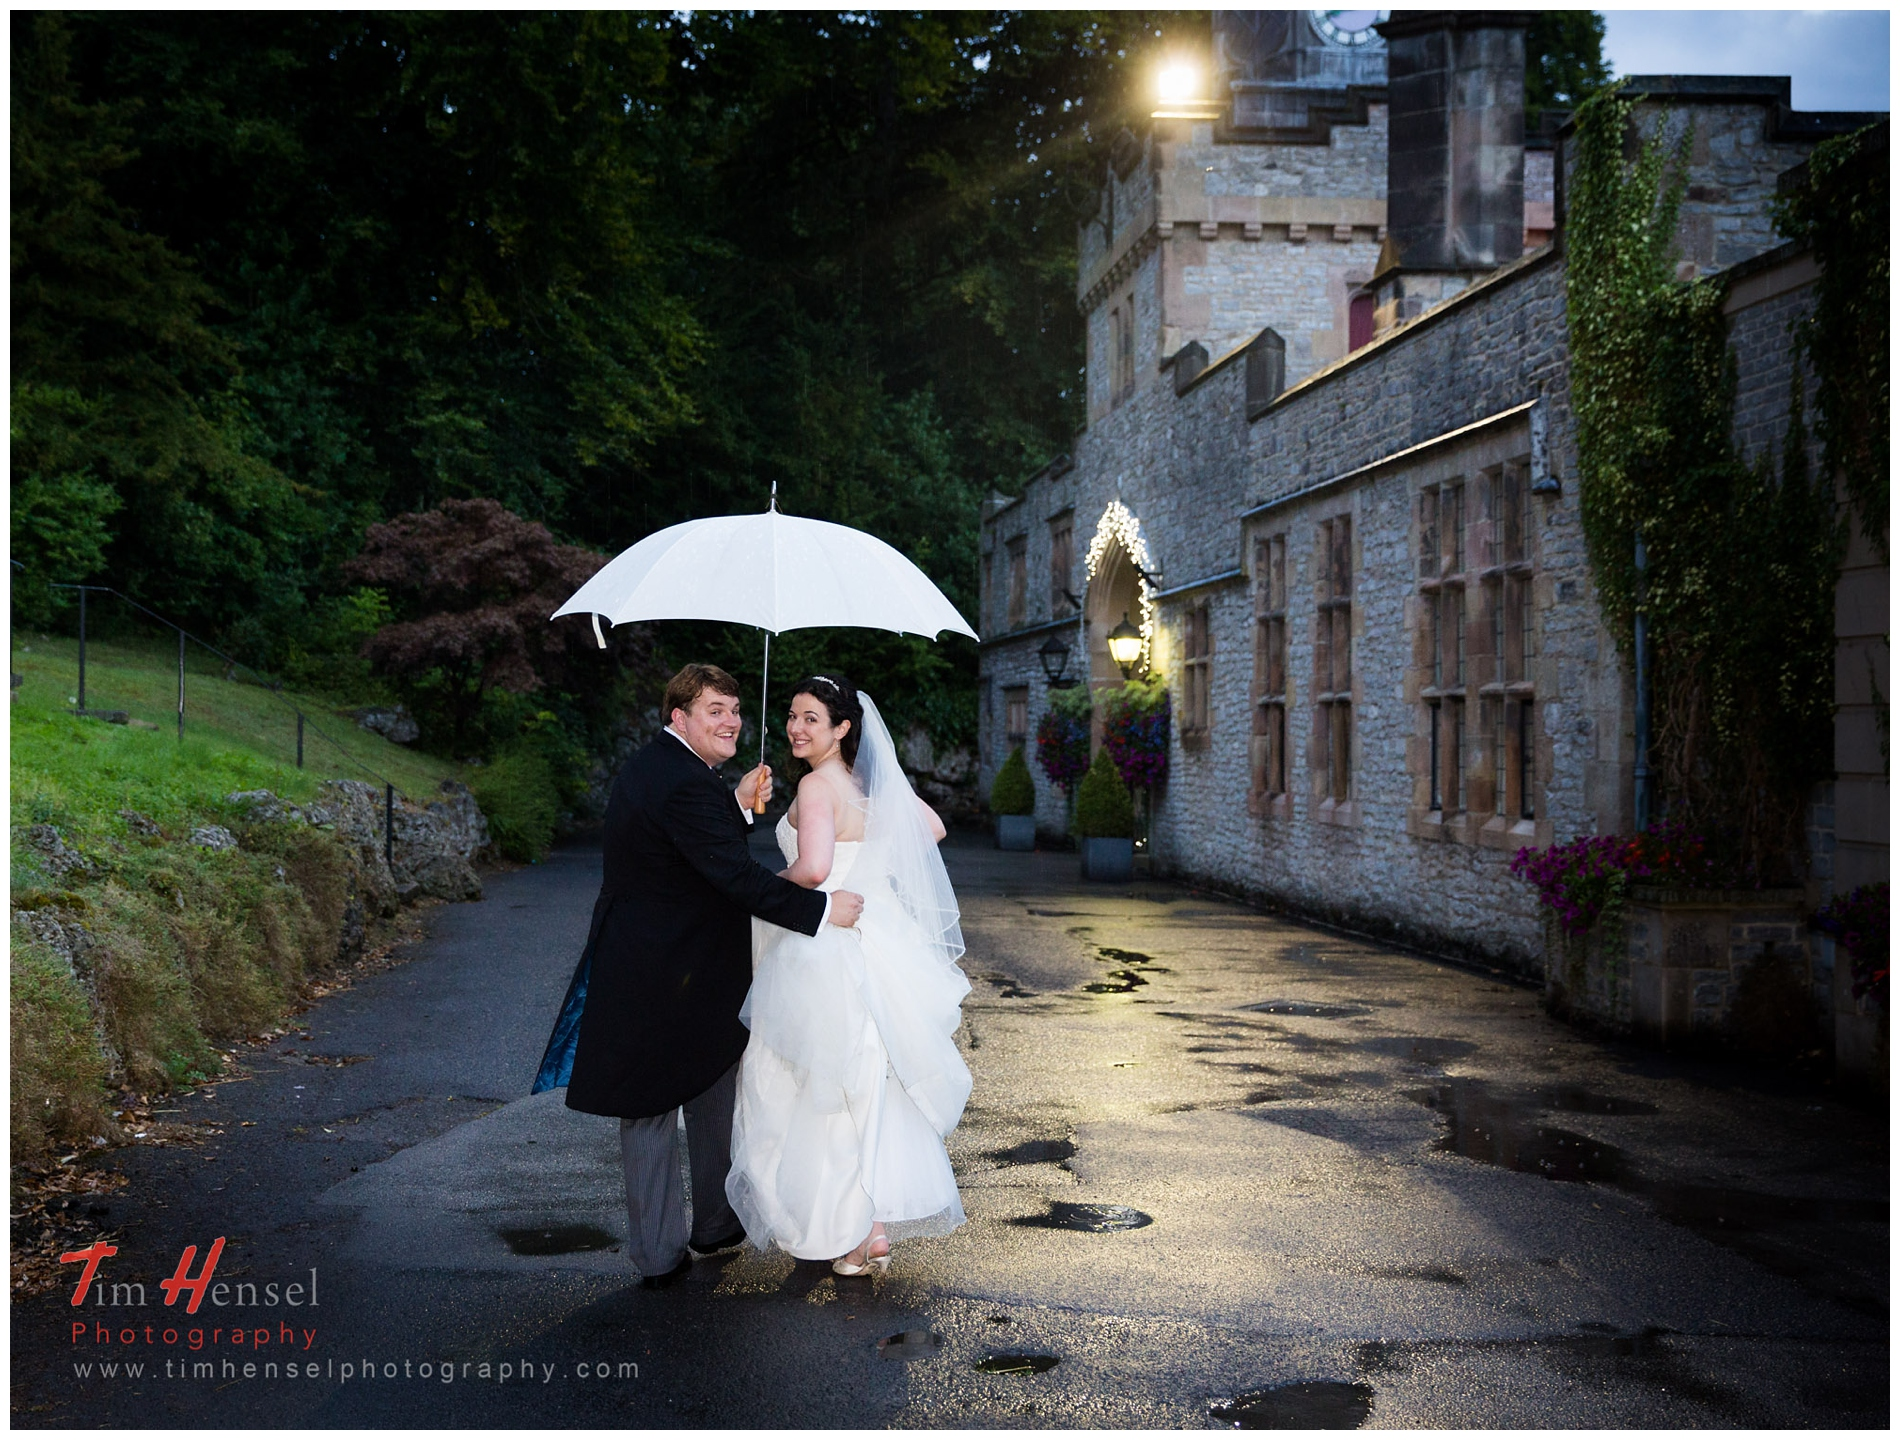 Relaxed and natural, a wedding photograph at thornbridge hall